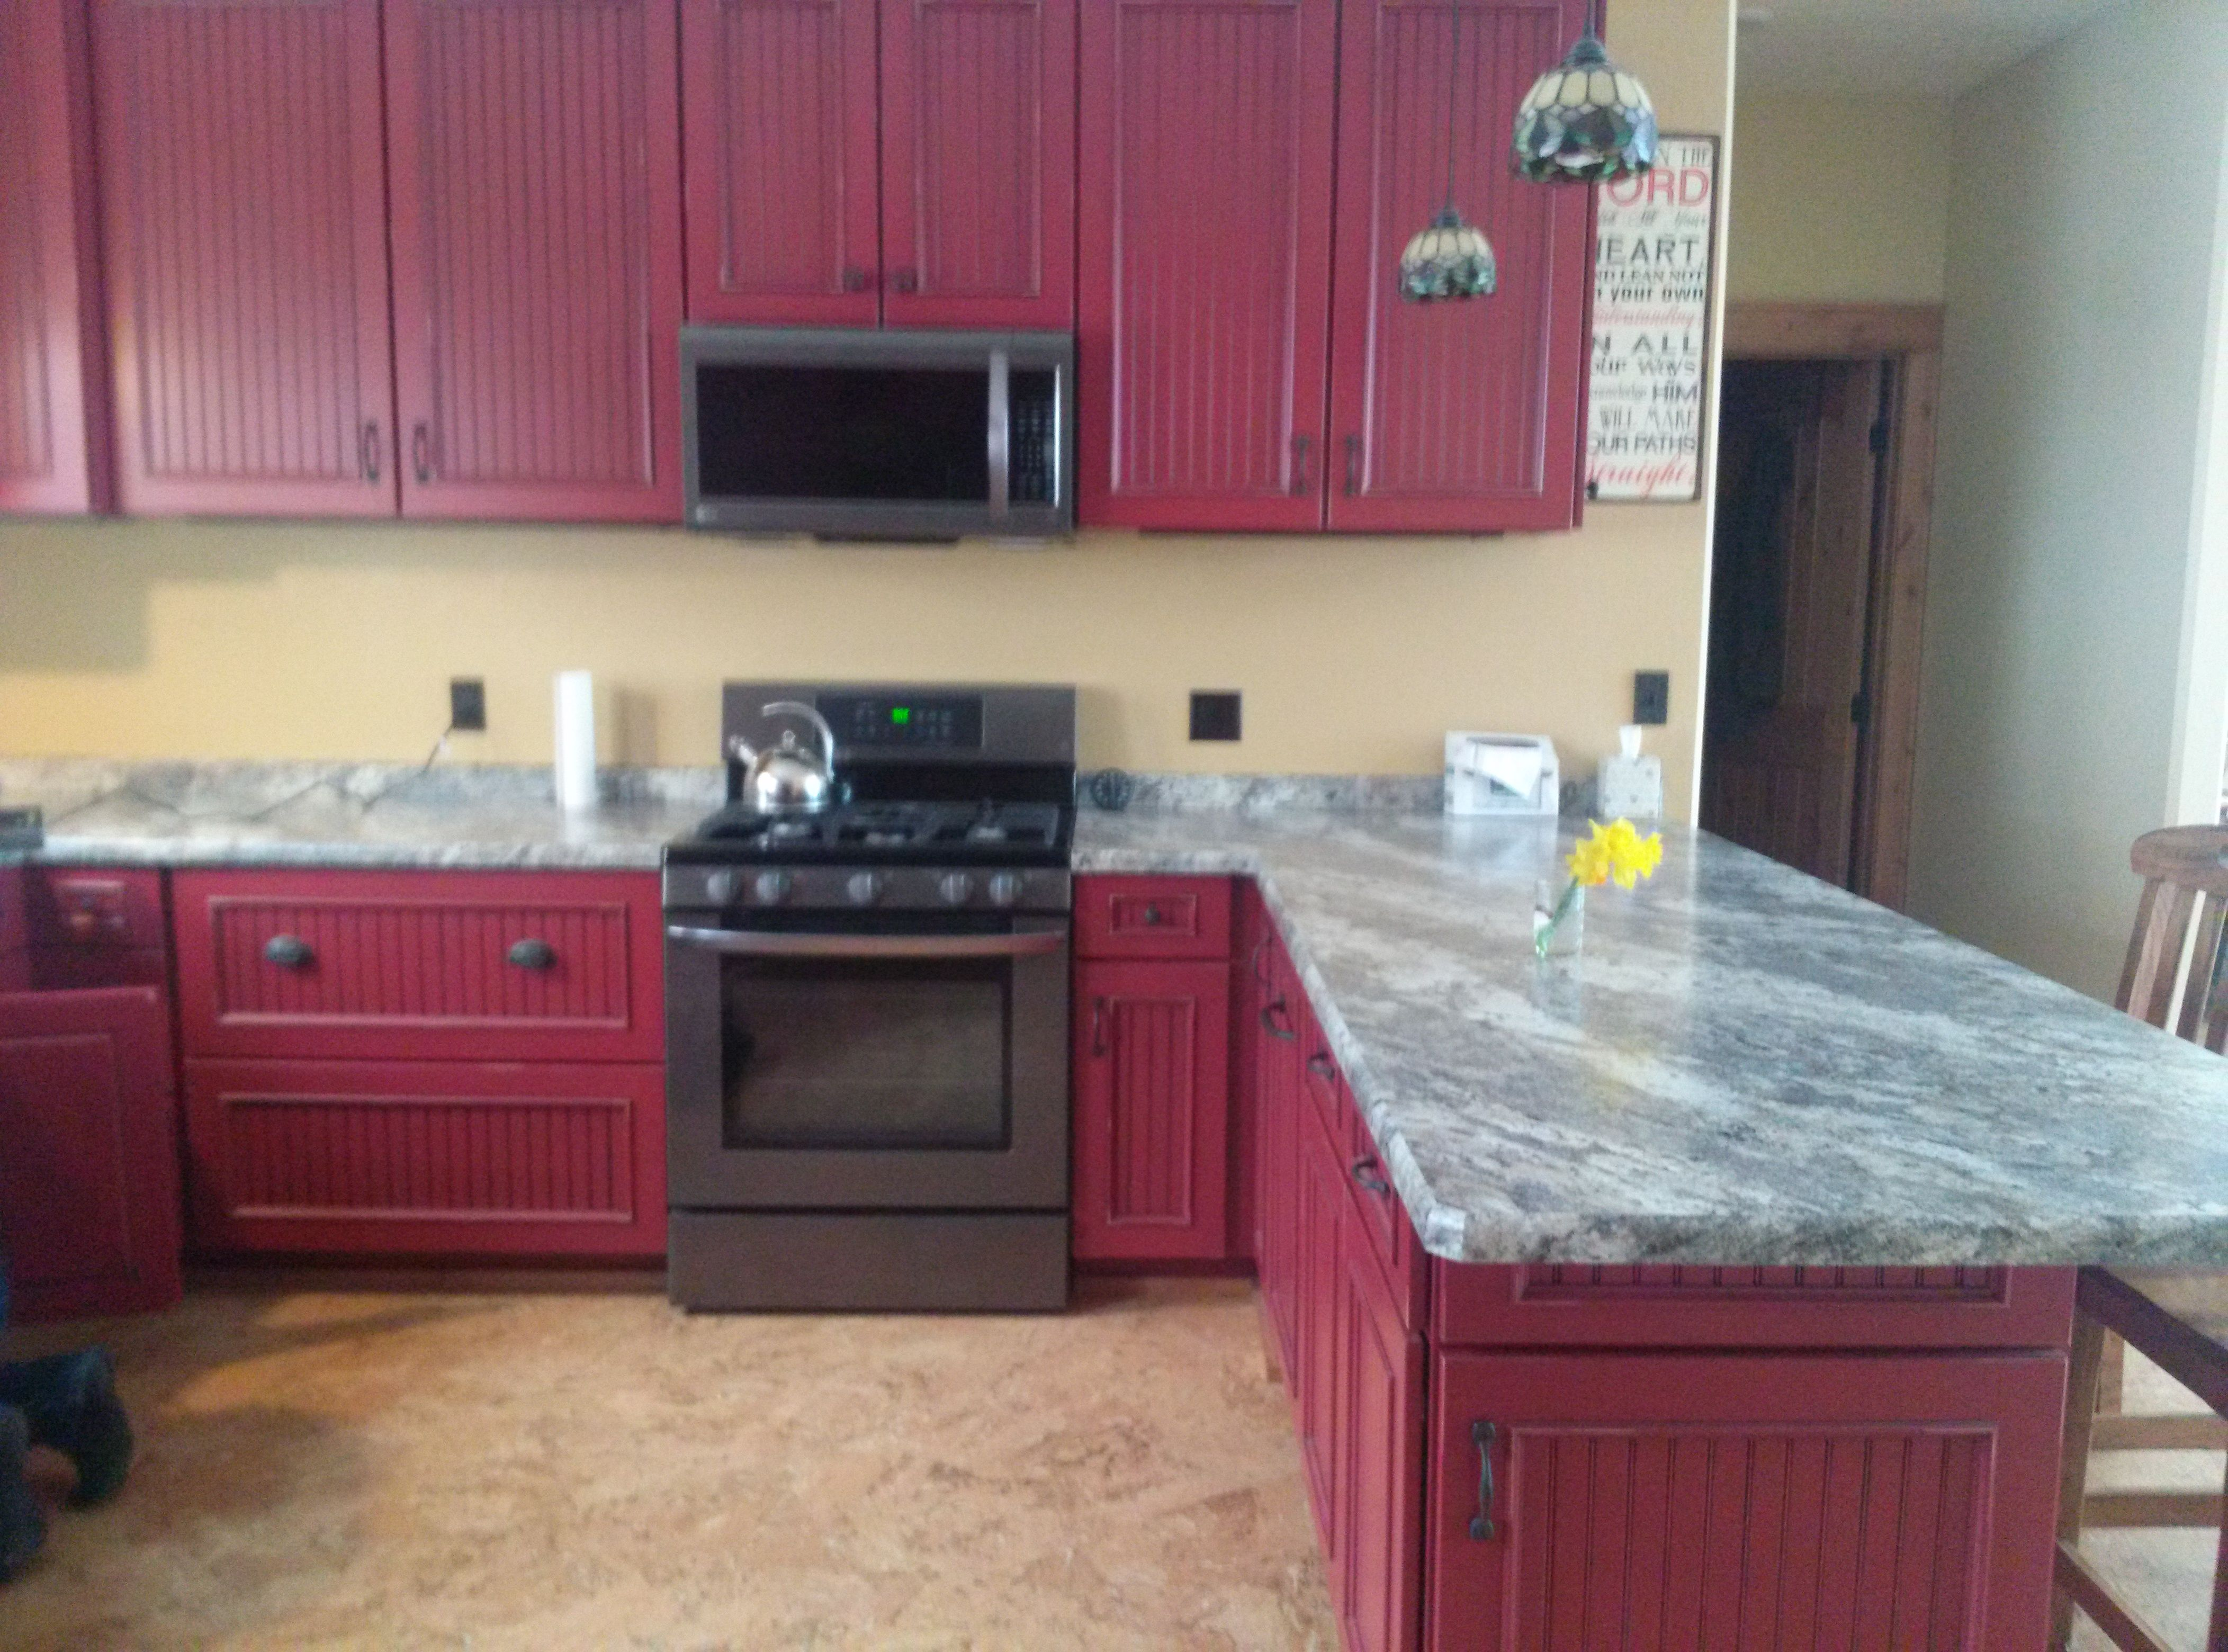 Cafe Azul Laminate Countertops Kitchen Cabinets In Bathroom